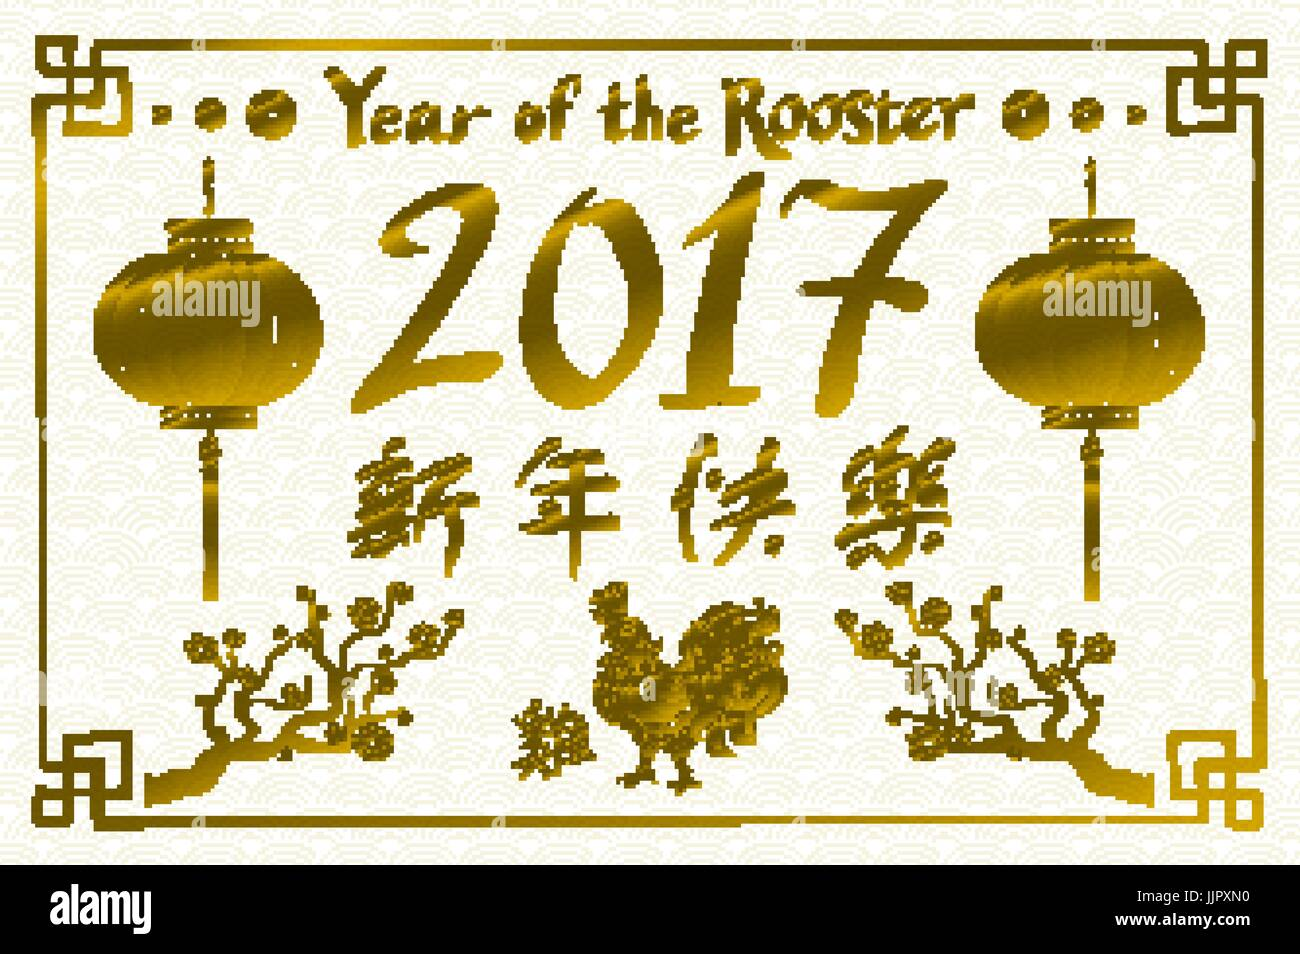 2017 new year with chinese symbol of rooster year of rooster 2017 new year with chinese symbol of rooster year of rooster golden rooster on dragon fish scales background art buycottarizona Gallery